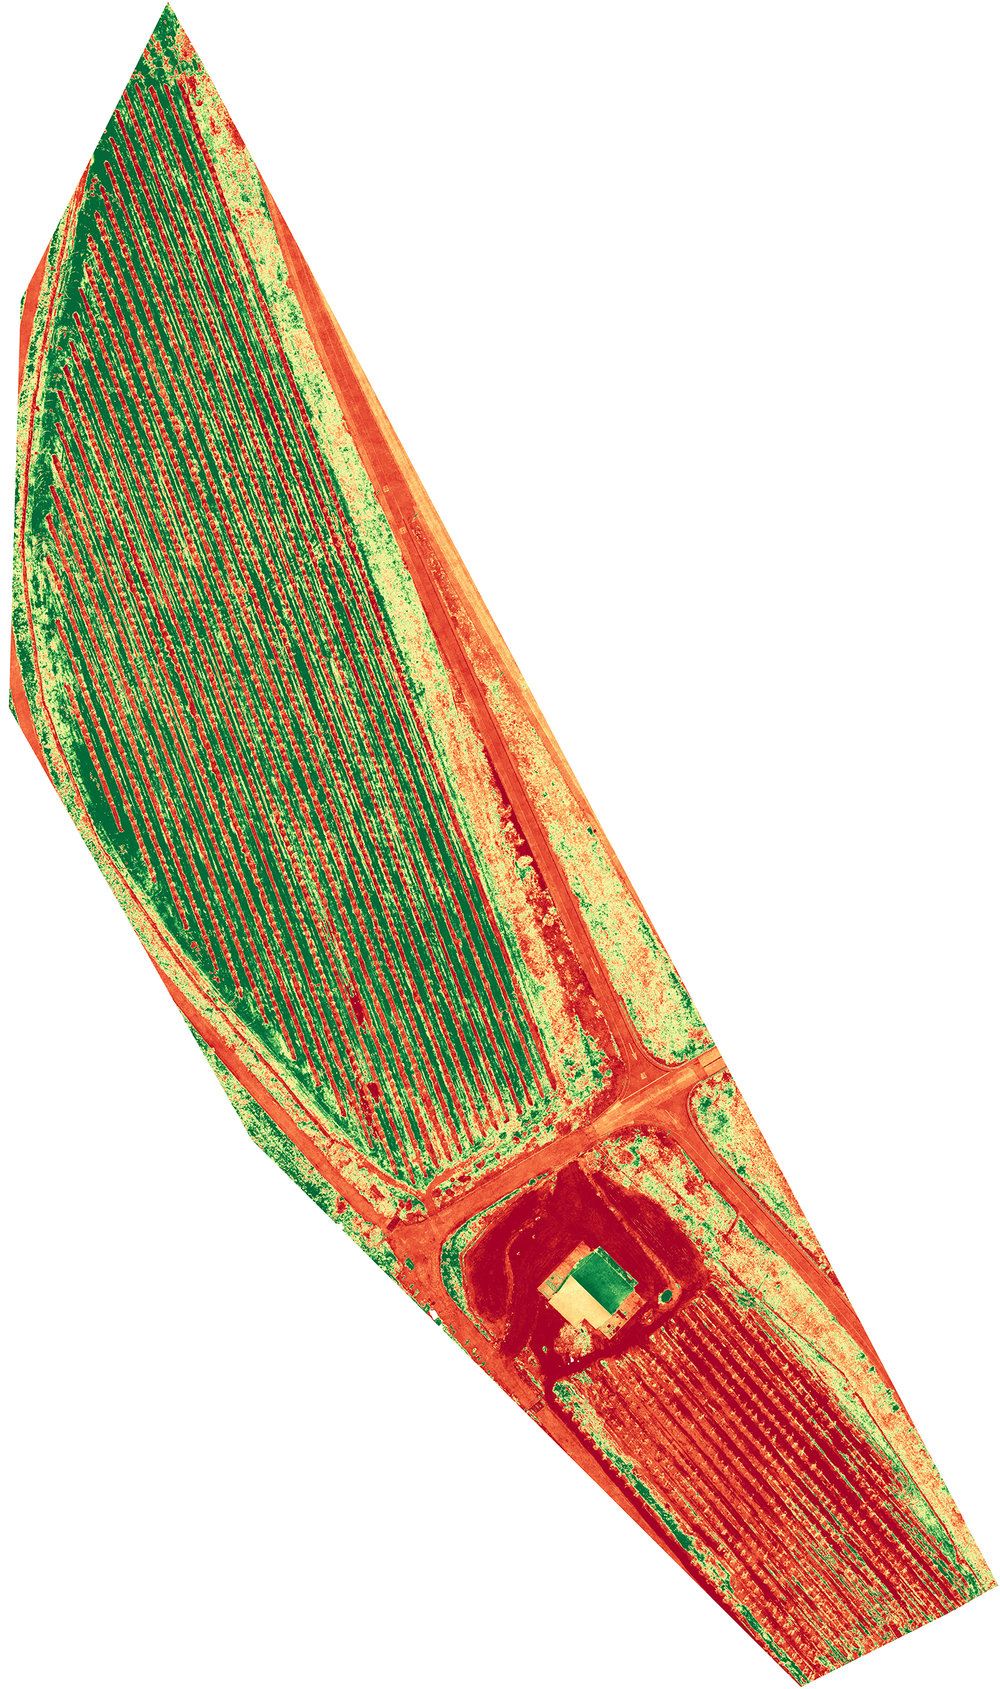 Plant health can be determined by color difference (NDVI).